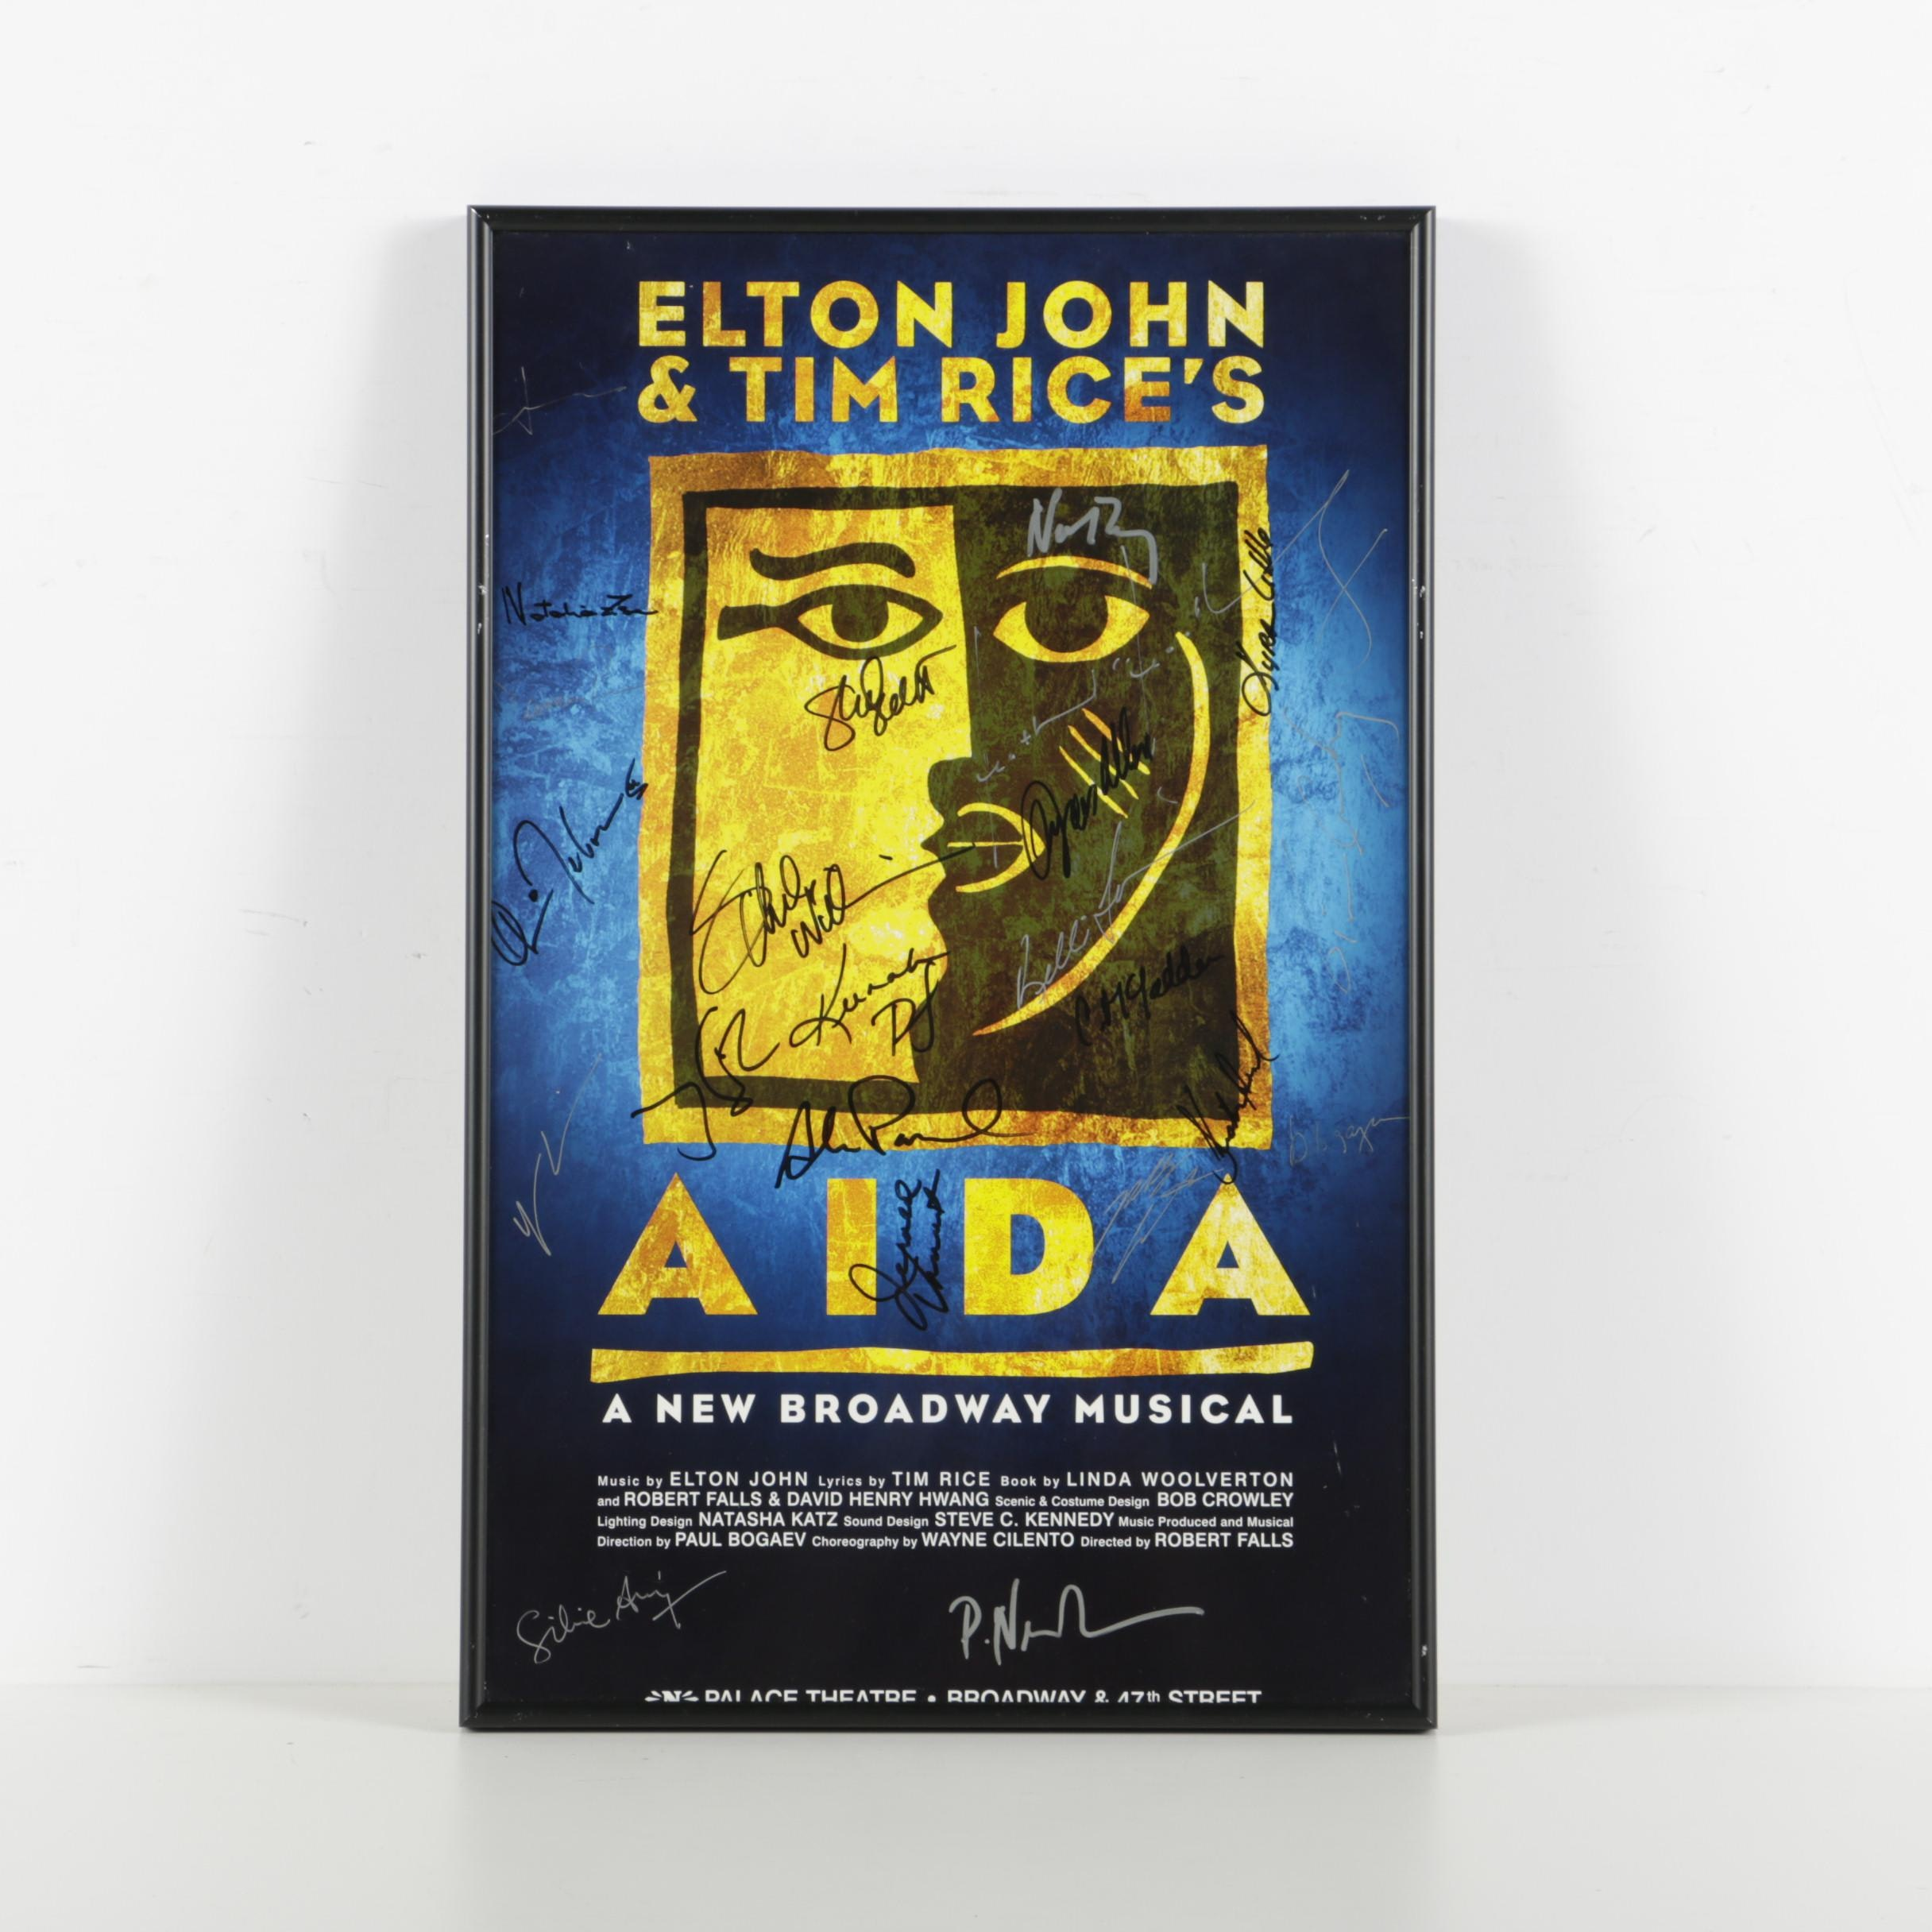 """Cast-Signed Poster for Elton John and Tim Rice's """"Aida"""" Musical on Broadway"""